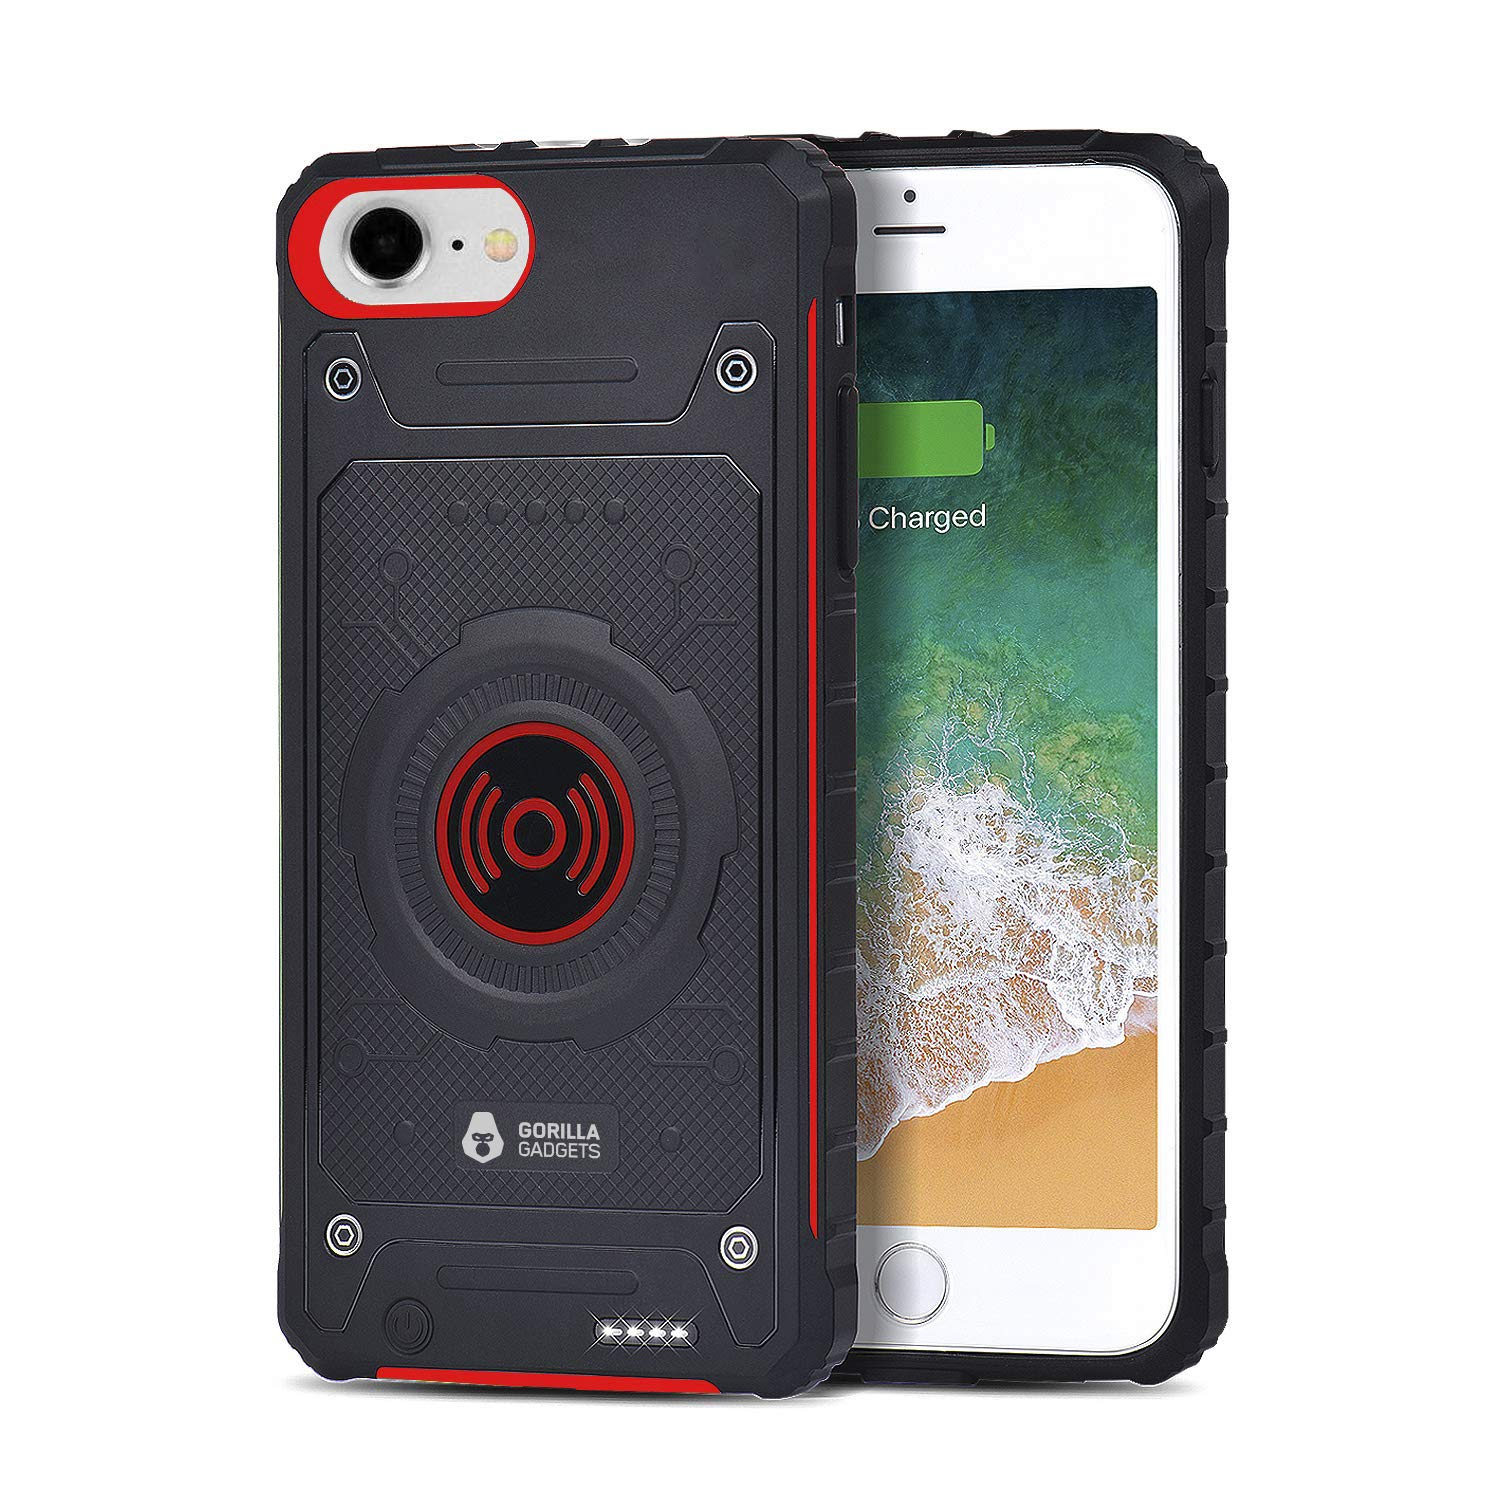 3200 mAh Qi Wireless Charging Battery Case Compatible with iPhone 6/6s/7/8 (4.7 in) by Gorilla Gadgets, Portable Rechargeable Extended Battery Protective Case with Lightning Port